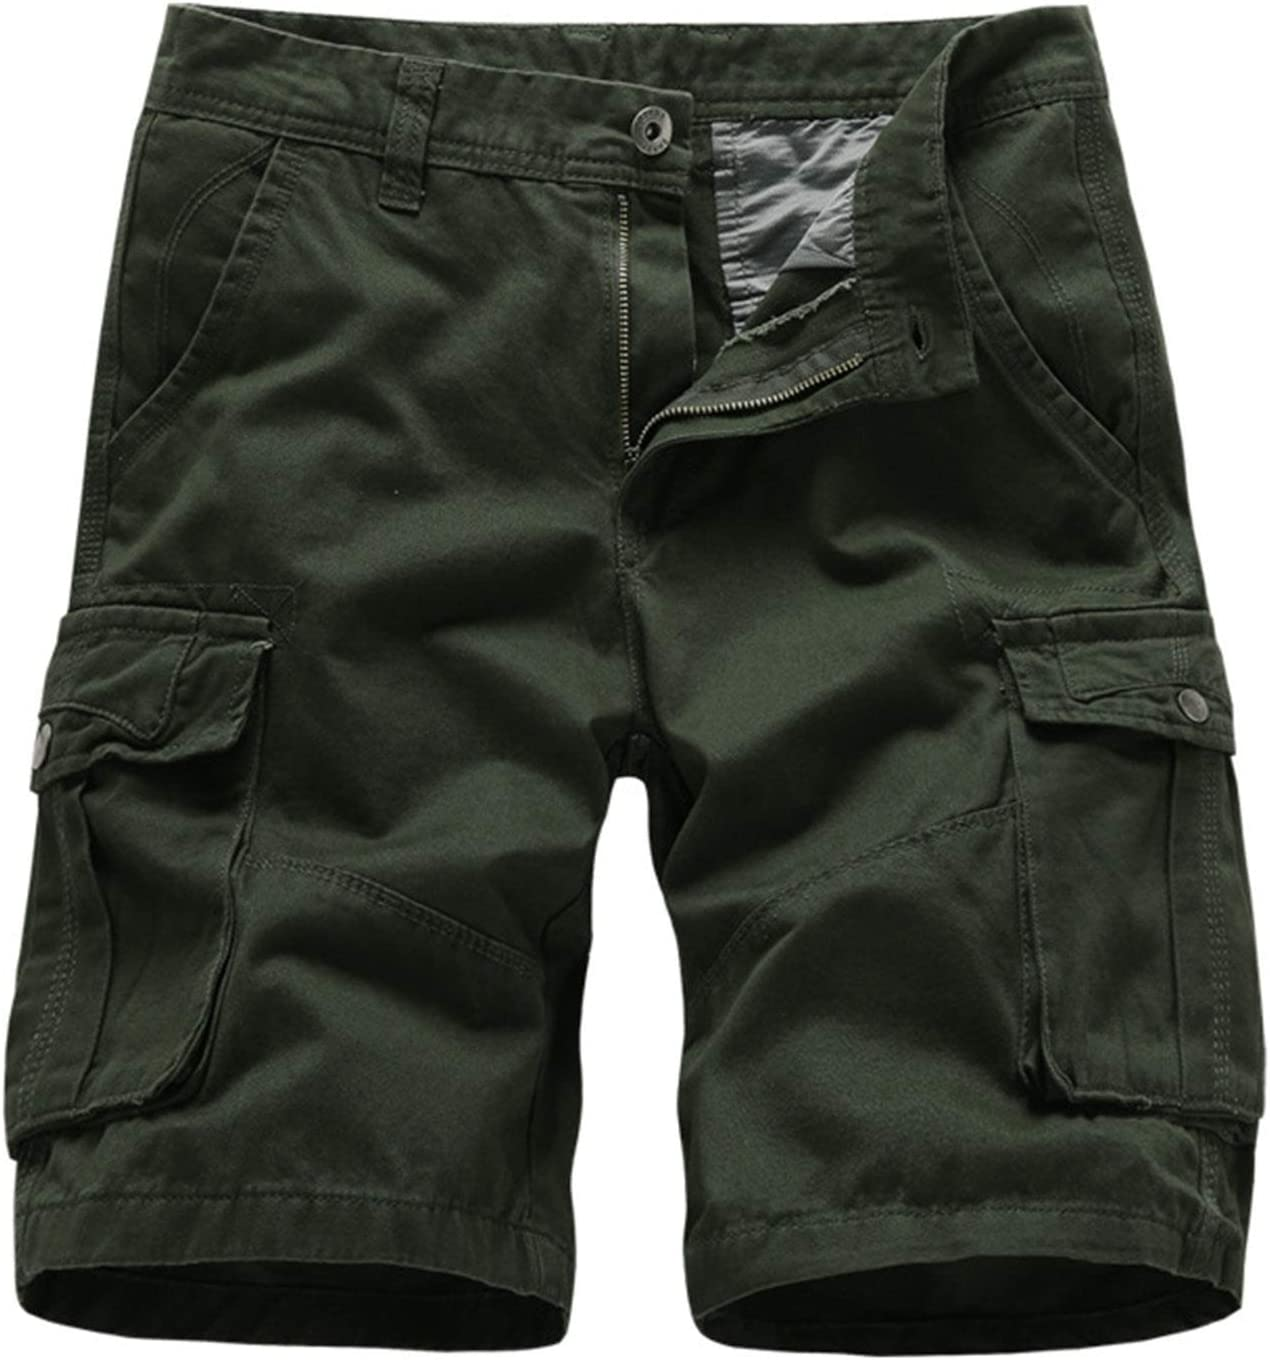 Mens Relaxed Fit Cargo Shorts Summer Work Tactical Short Pants Multi Pockets Casual Outdoor Twill Half Trousers (Armygreen,34)